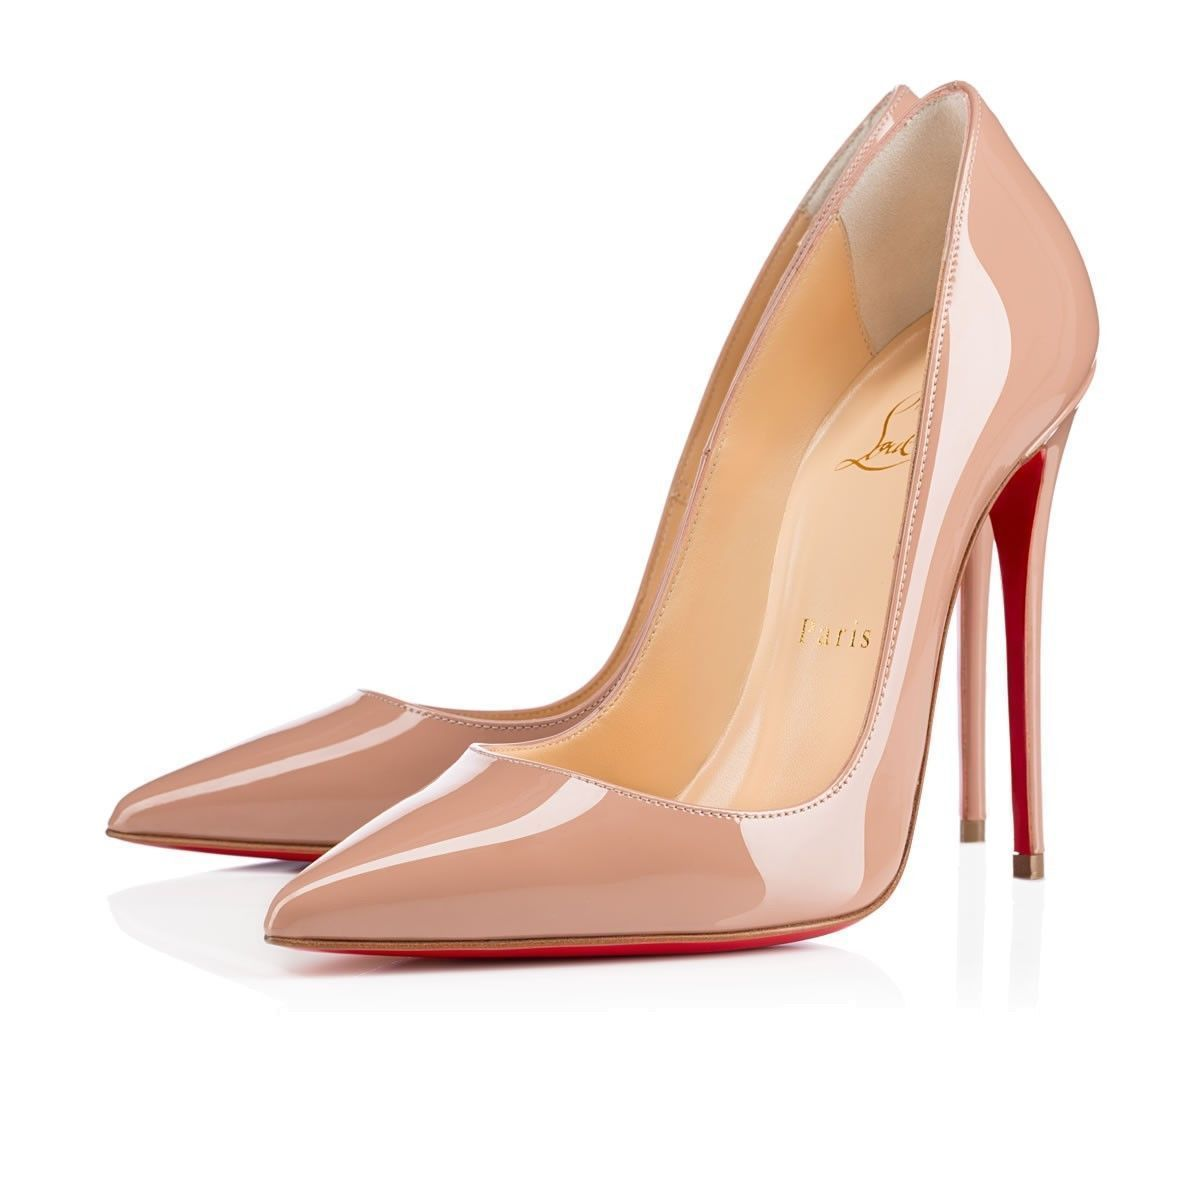 e86072efcfc0 100% AUTH Christian Louboutin So Kate 120 Heels 39 Shoes Cream Beige Nude  Patent